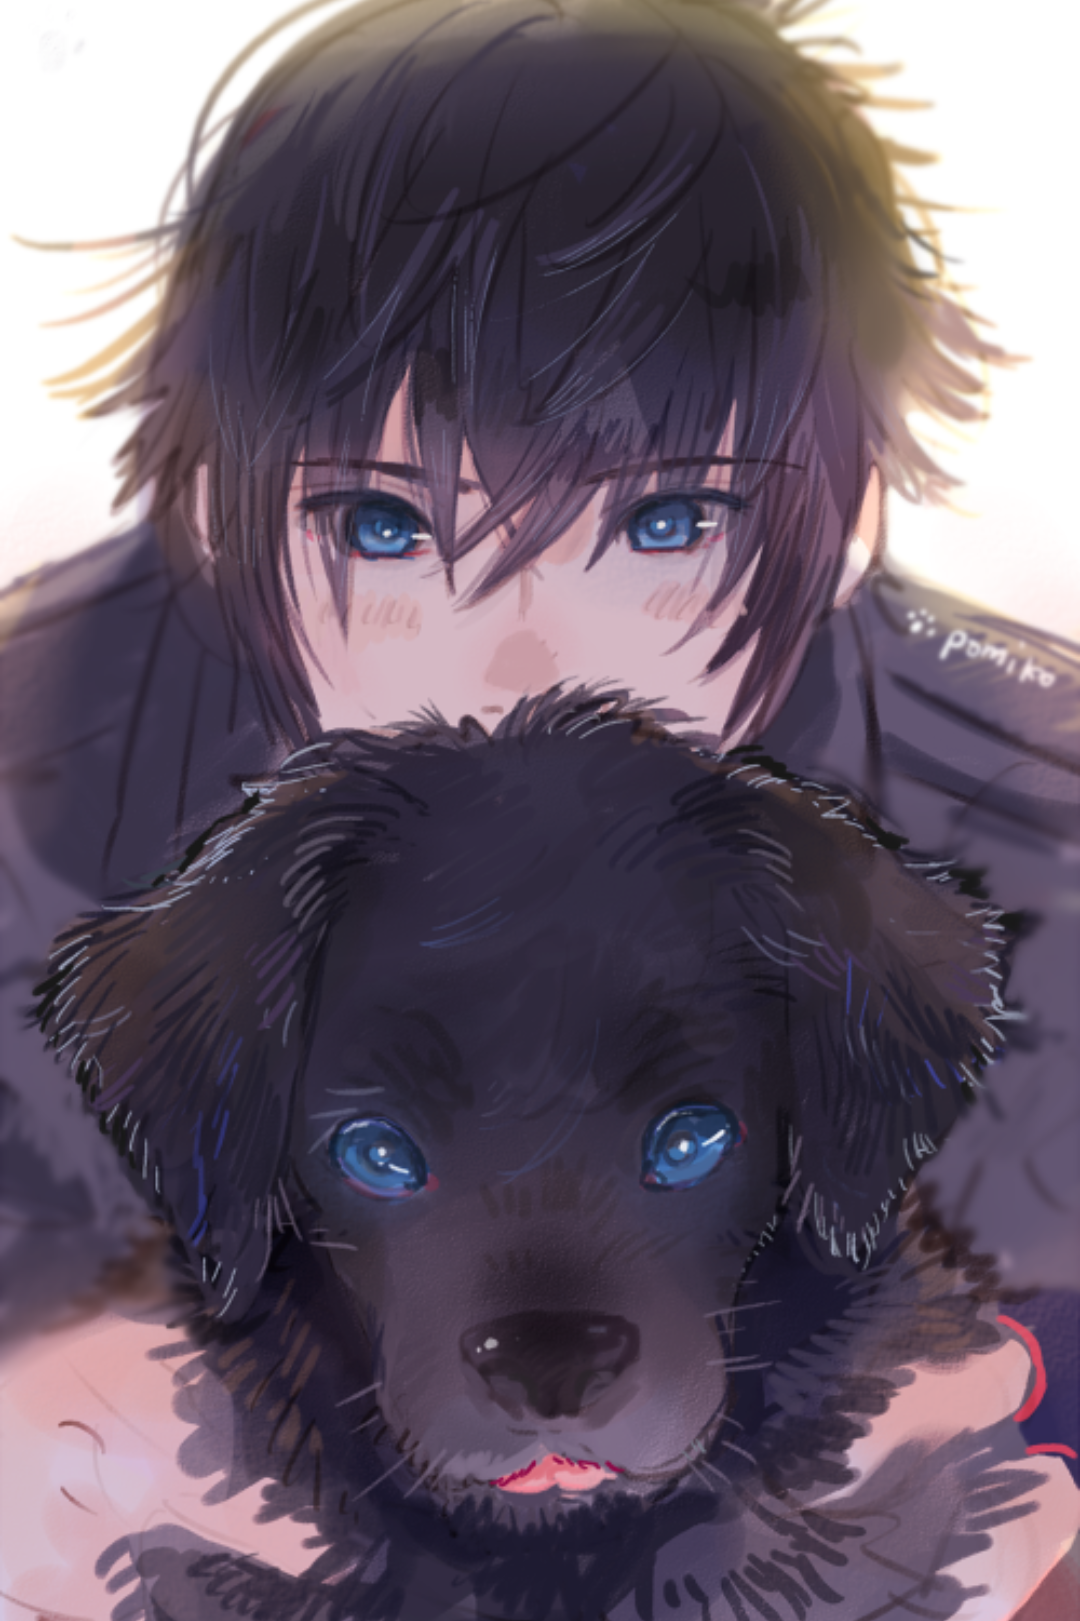 Image Result For Anime Guy With Blue Eyes Cute Anime Boy Anime Guys Final Fantasy Art